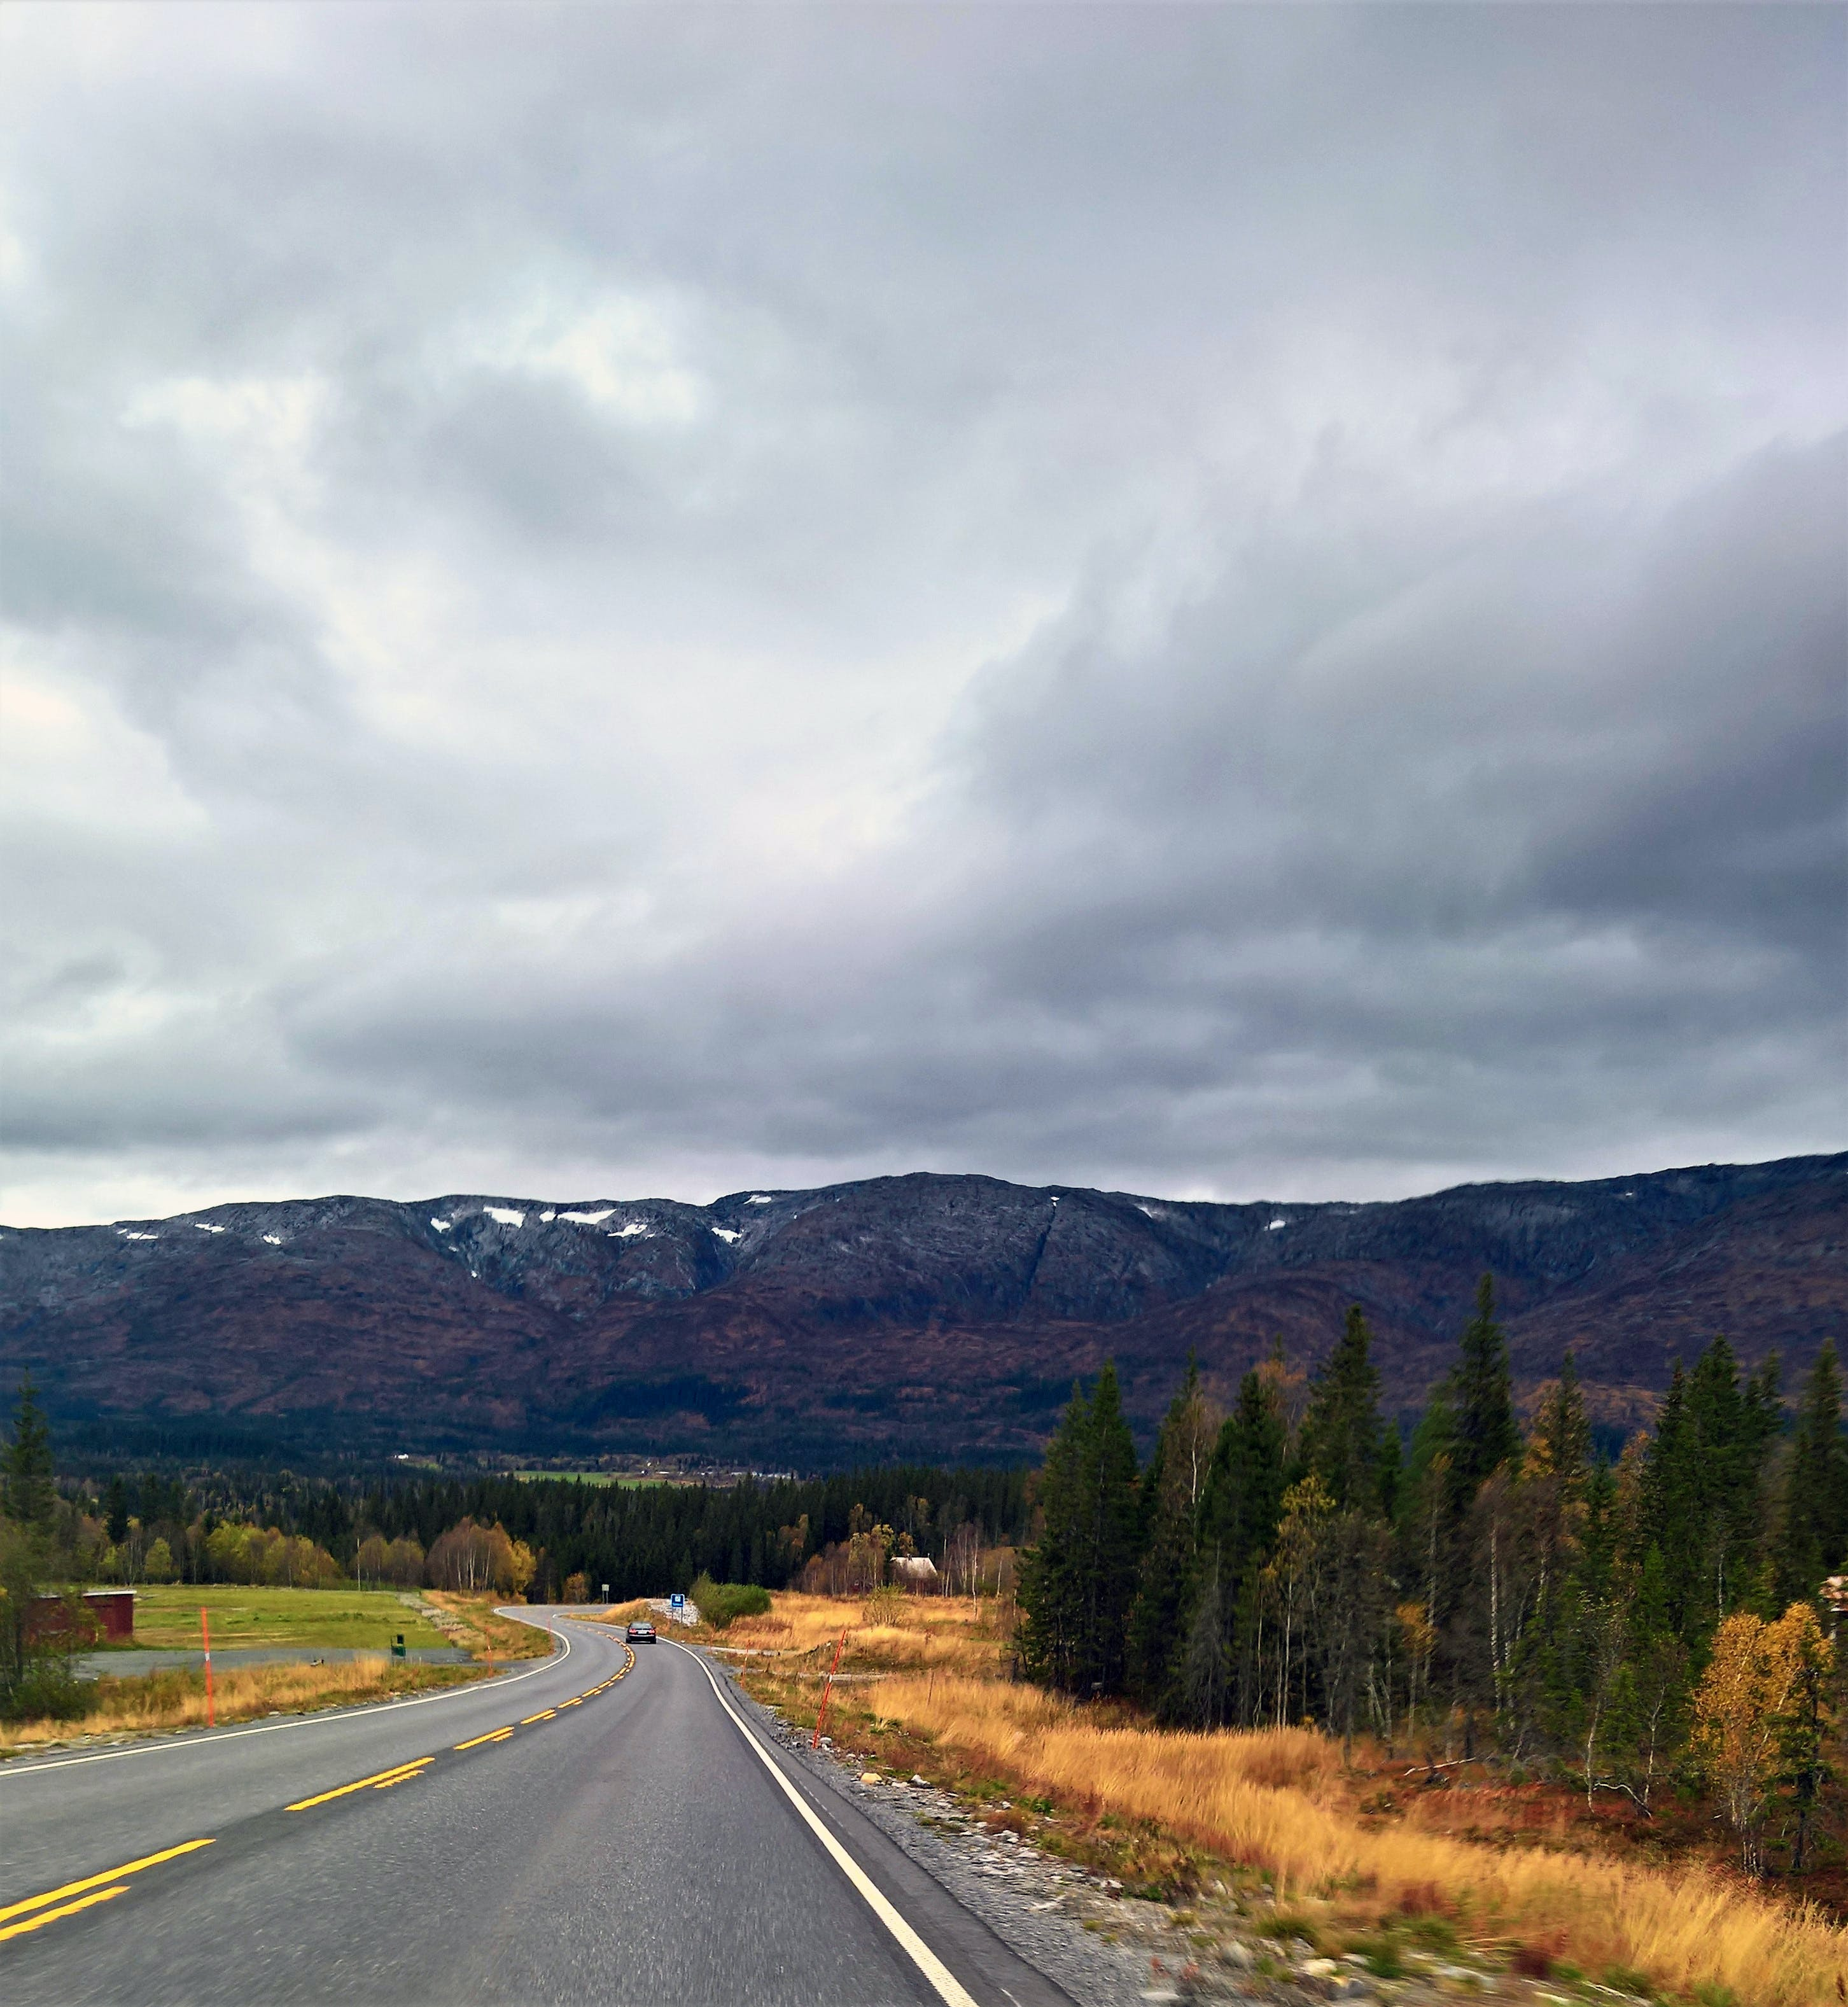 Gray Asphalt Road With Trees Under Cloudy Sky